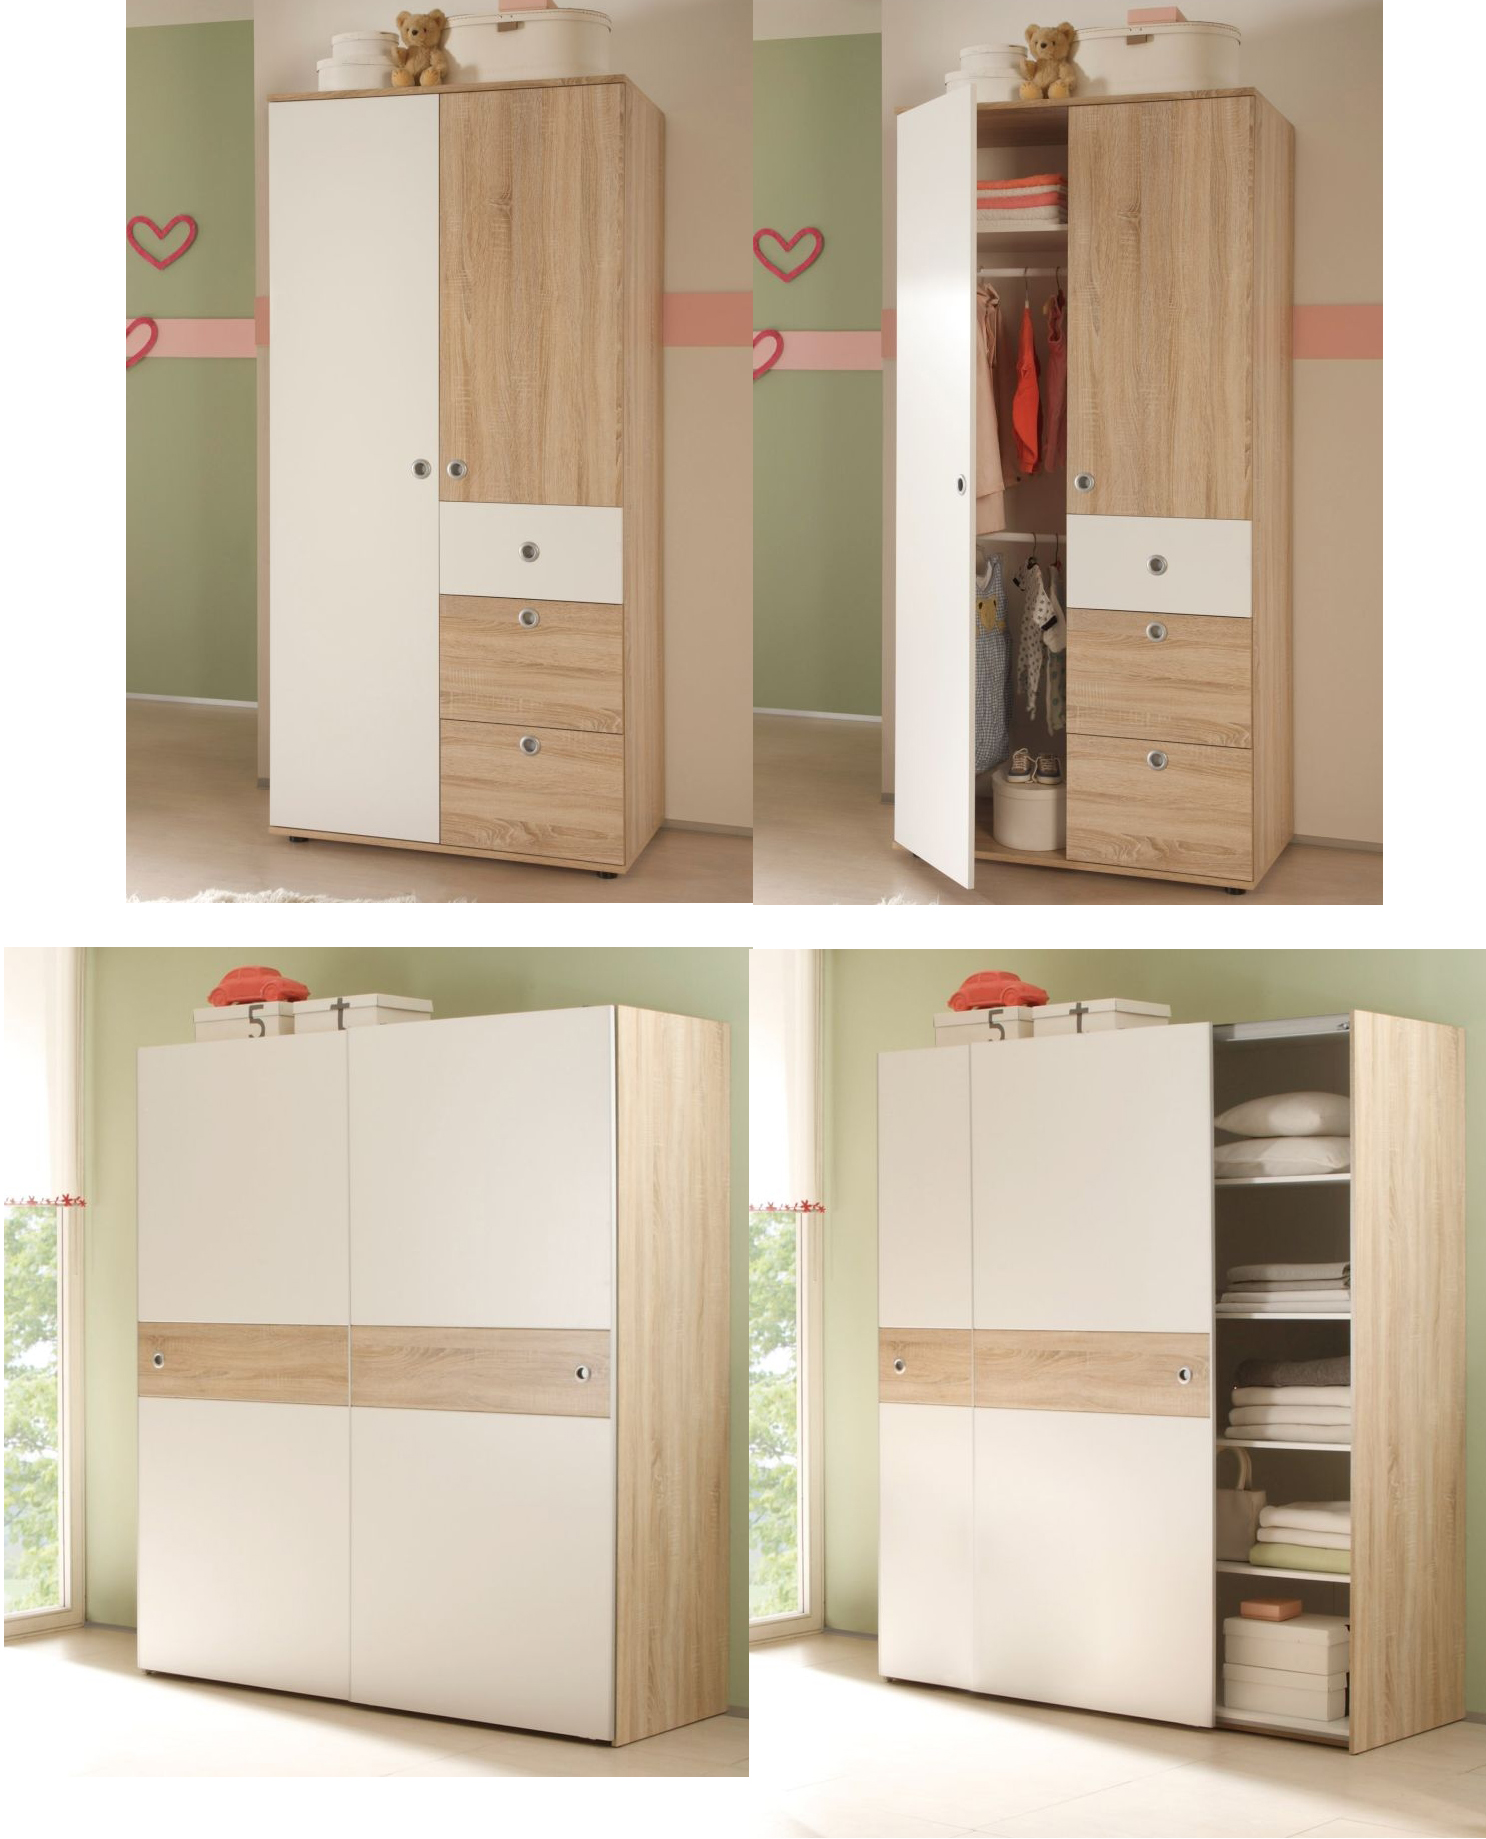 kleiderschrank tina eiche sonoma wei kinderzimmer jugendzimmer babyzimmer. Black Bedroom Furniture Sets. Home Design Ideas